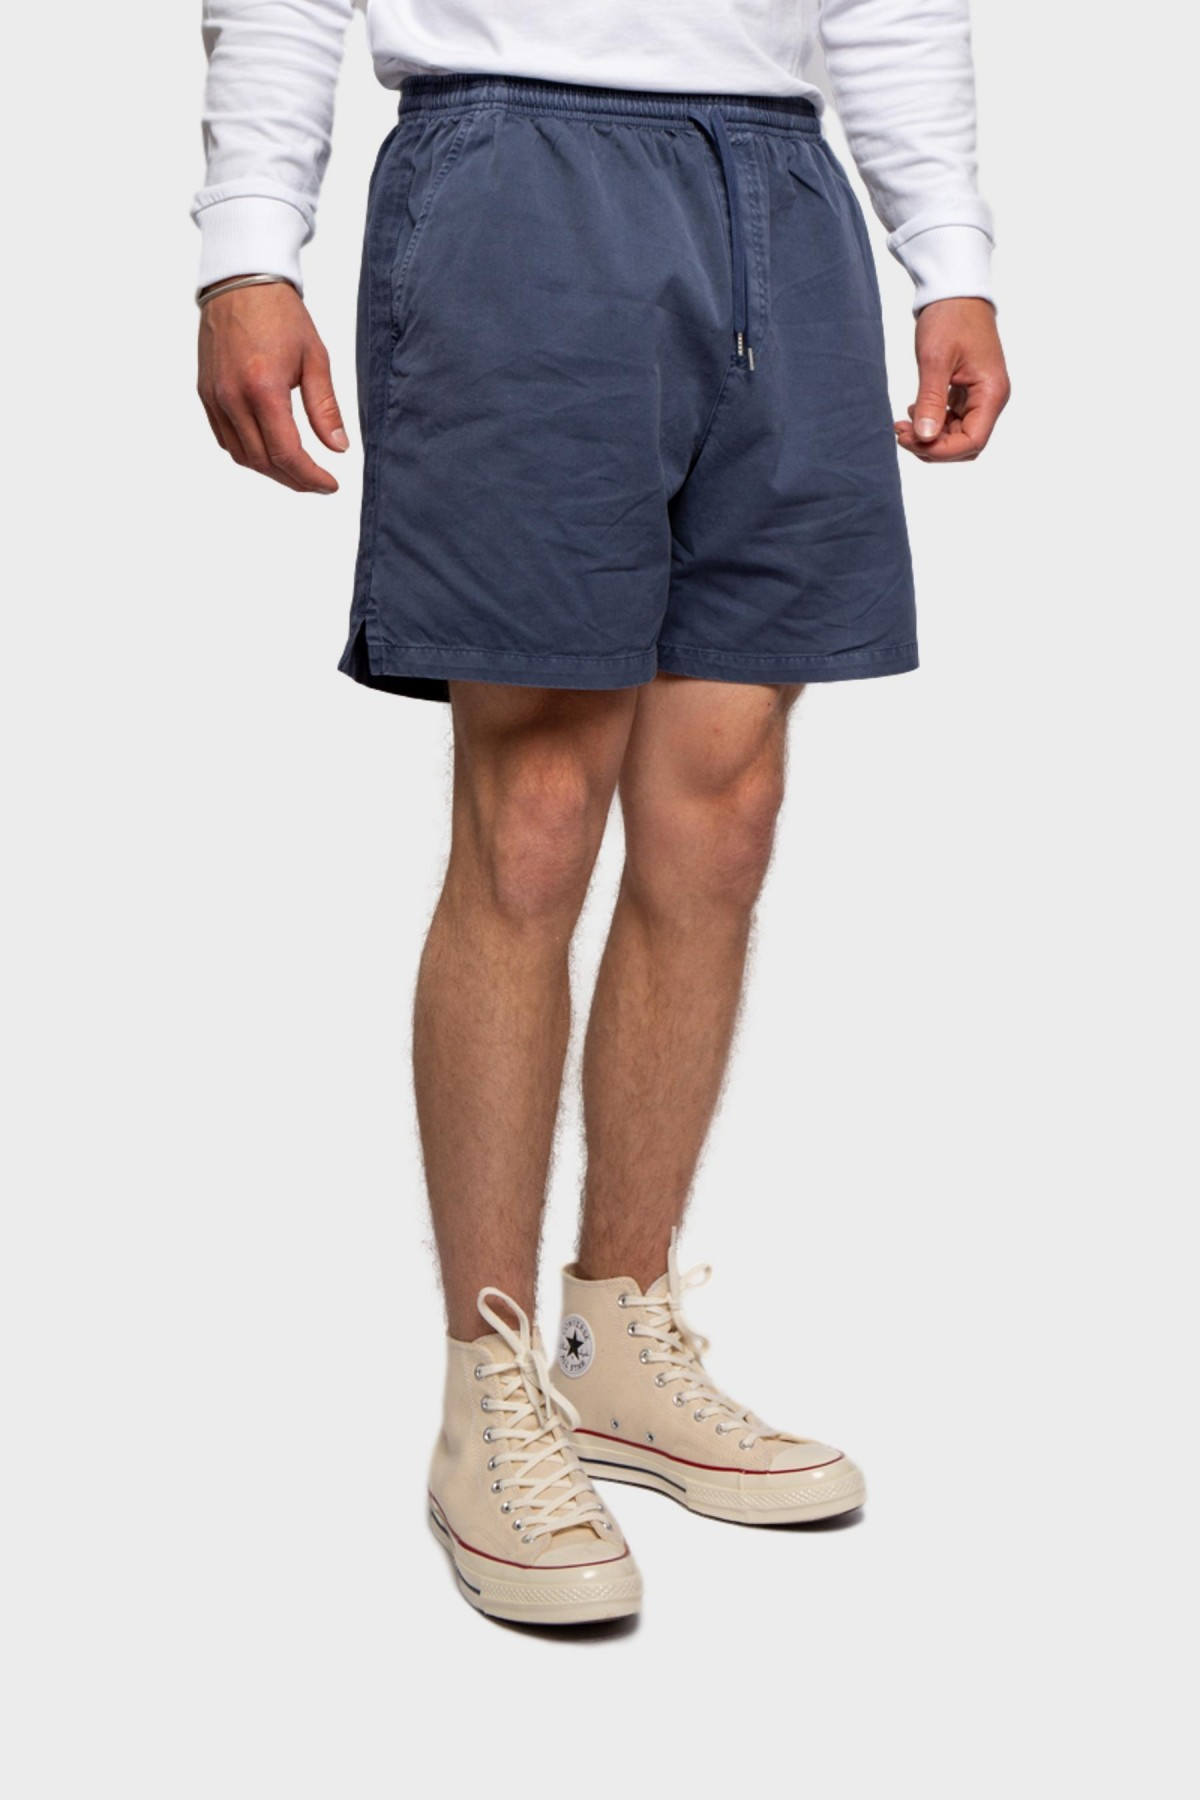 Schnayderman's Shorts Garment Dyed in Mood indigo